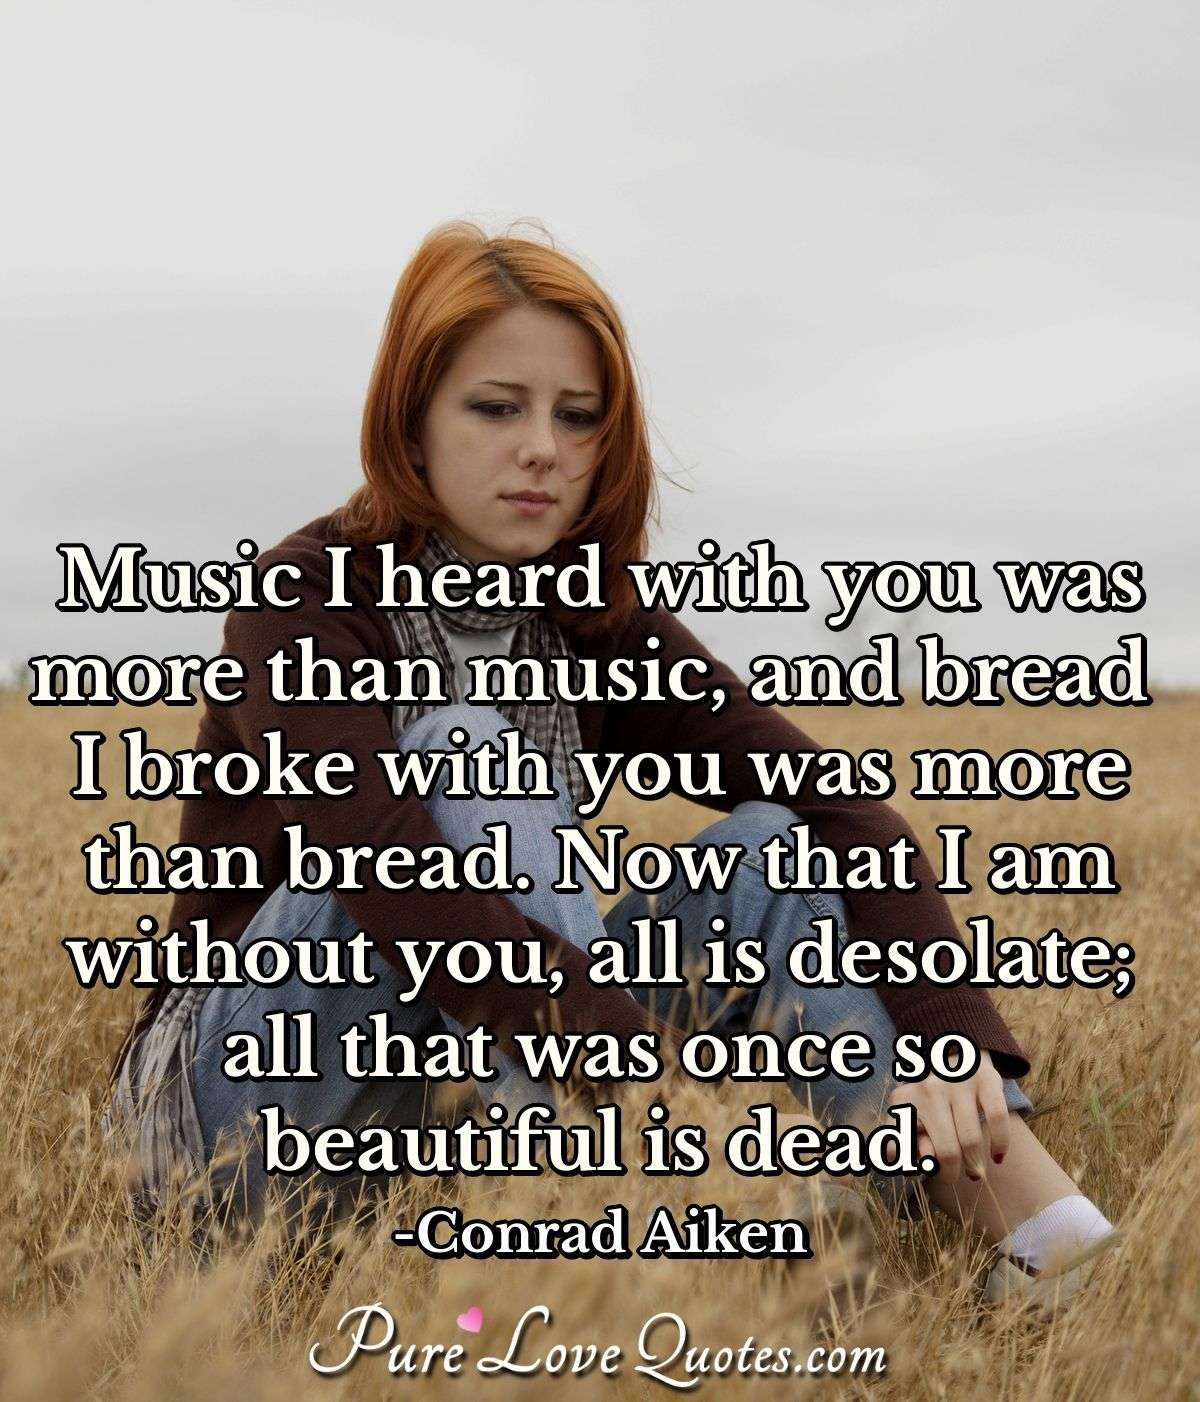 Music I heard with you was more than music, and bread I broke with you was more than bread. Now that I am without you, all is desolate; all that was once so beautiful is dead. - Conrad Aiken